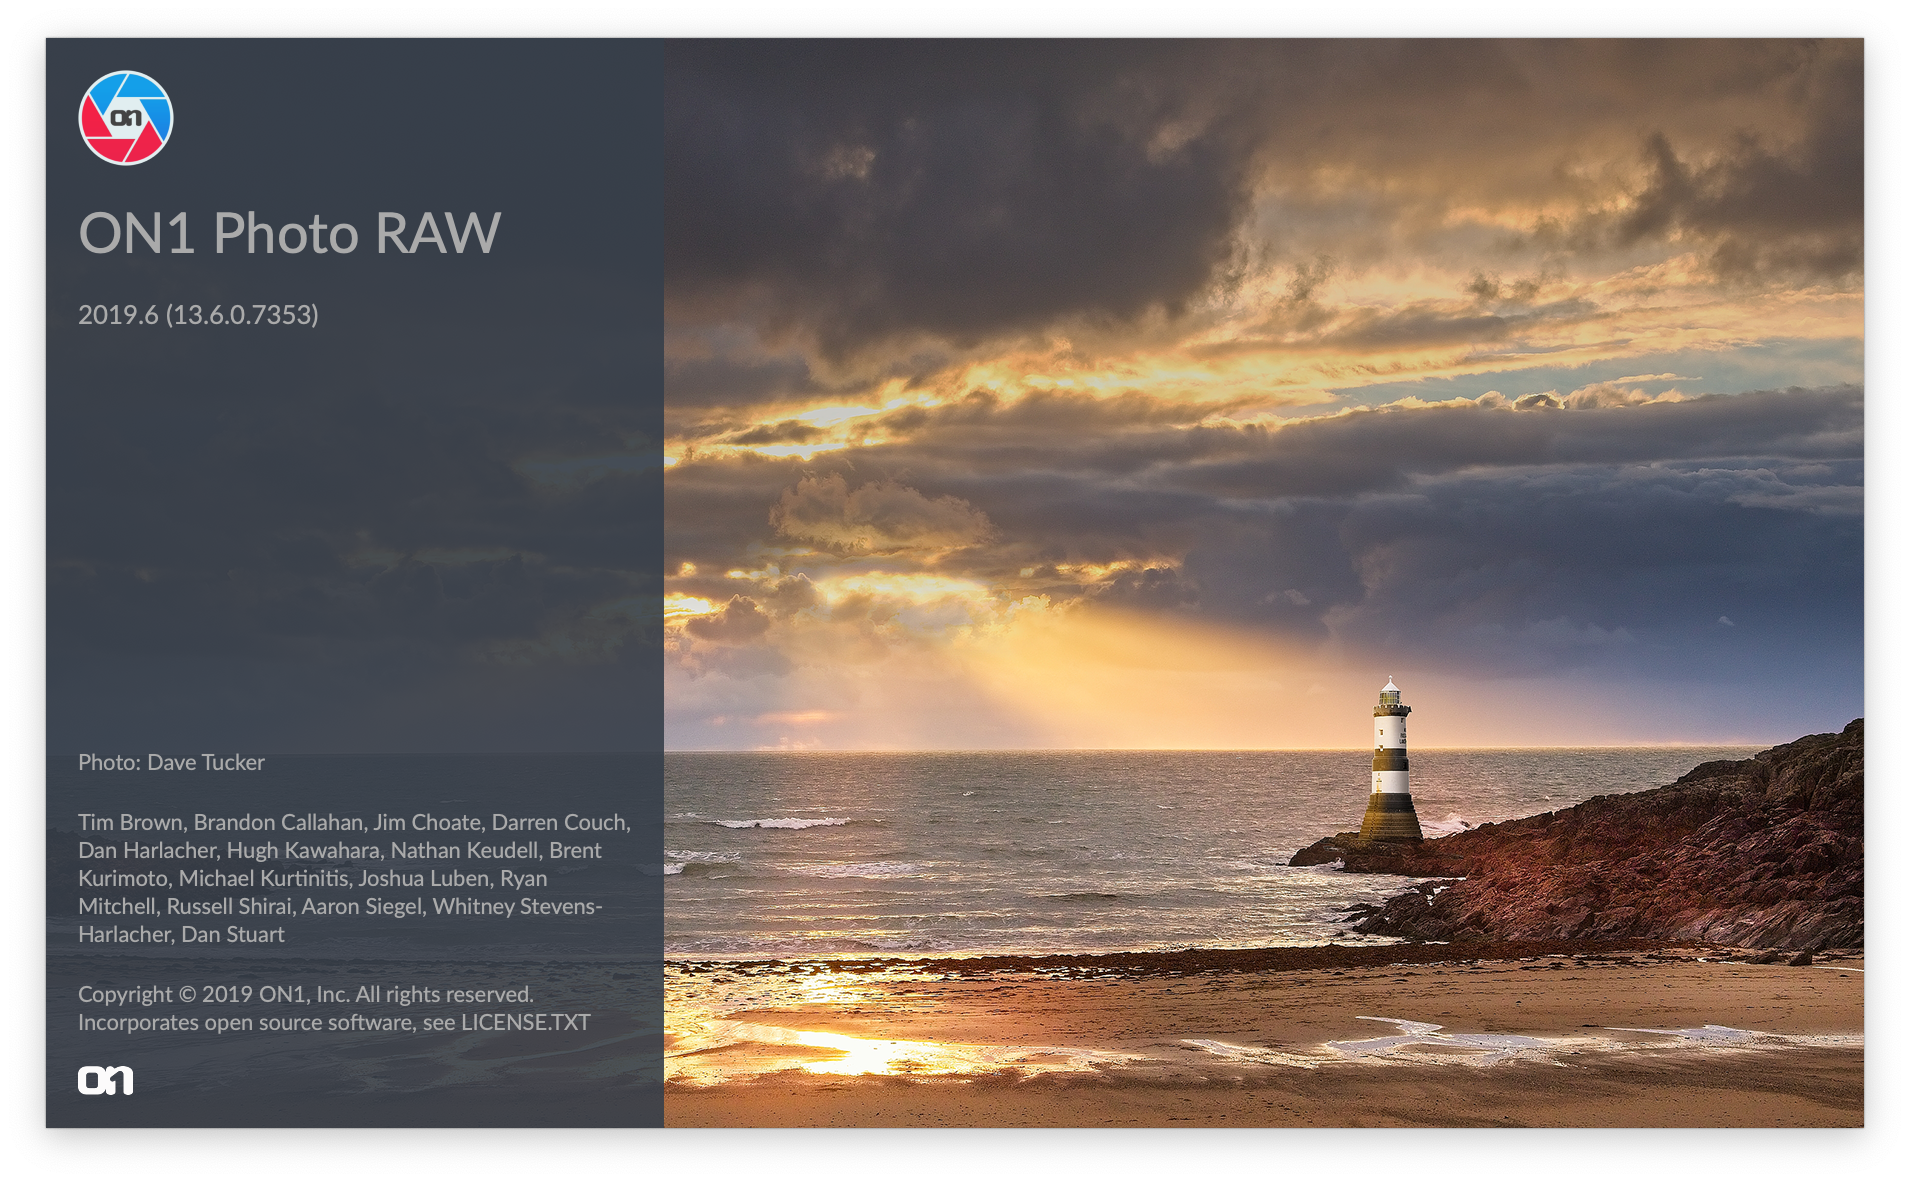 ON1 Photo RAW 2019 6 Release Notes and Installation Instructions